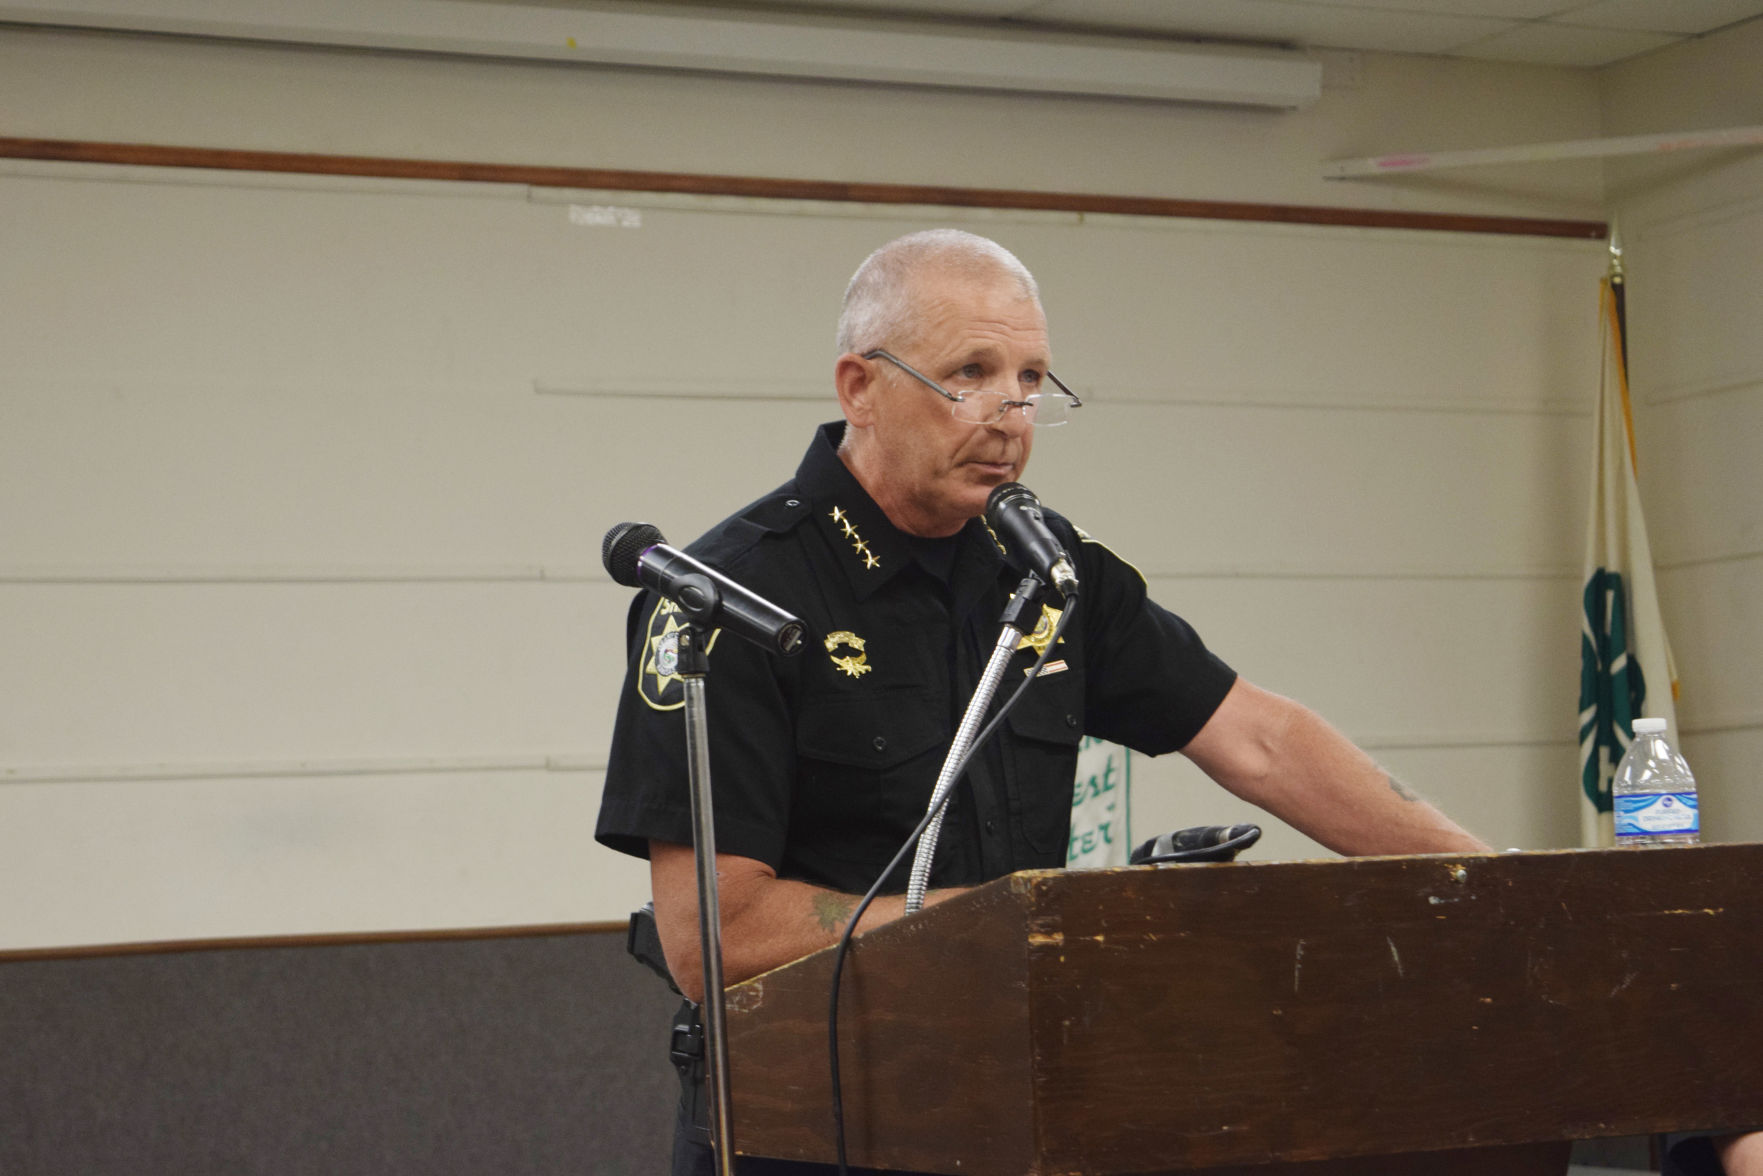 Sheriff discusses several department changes